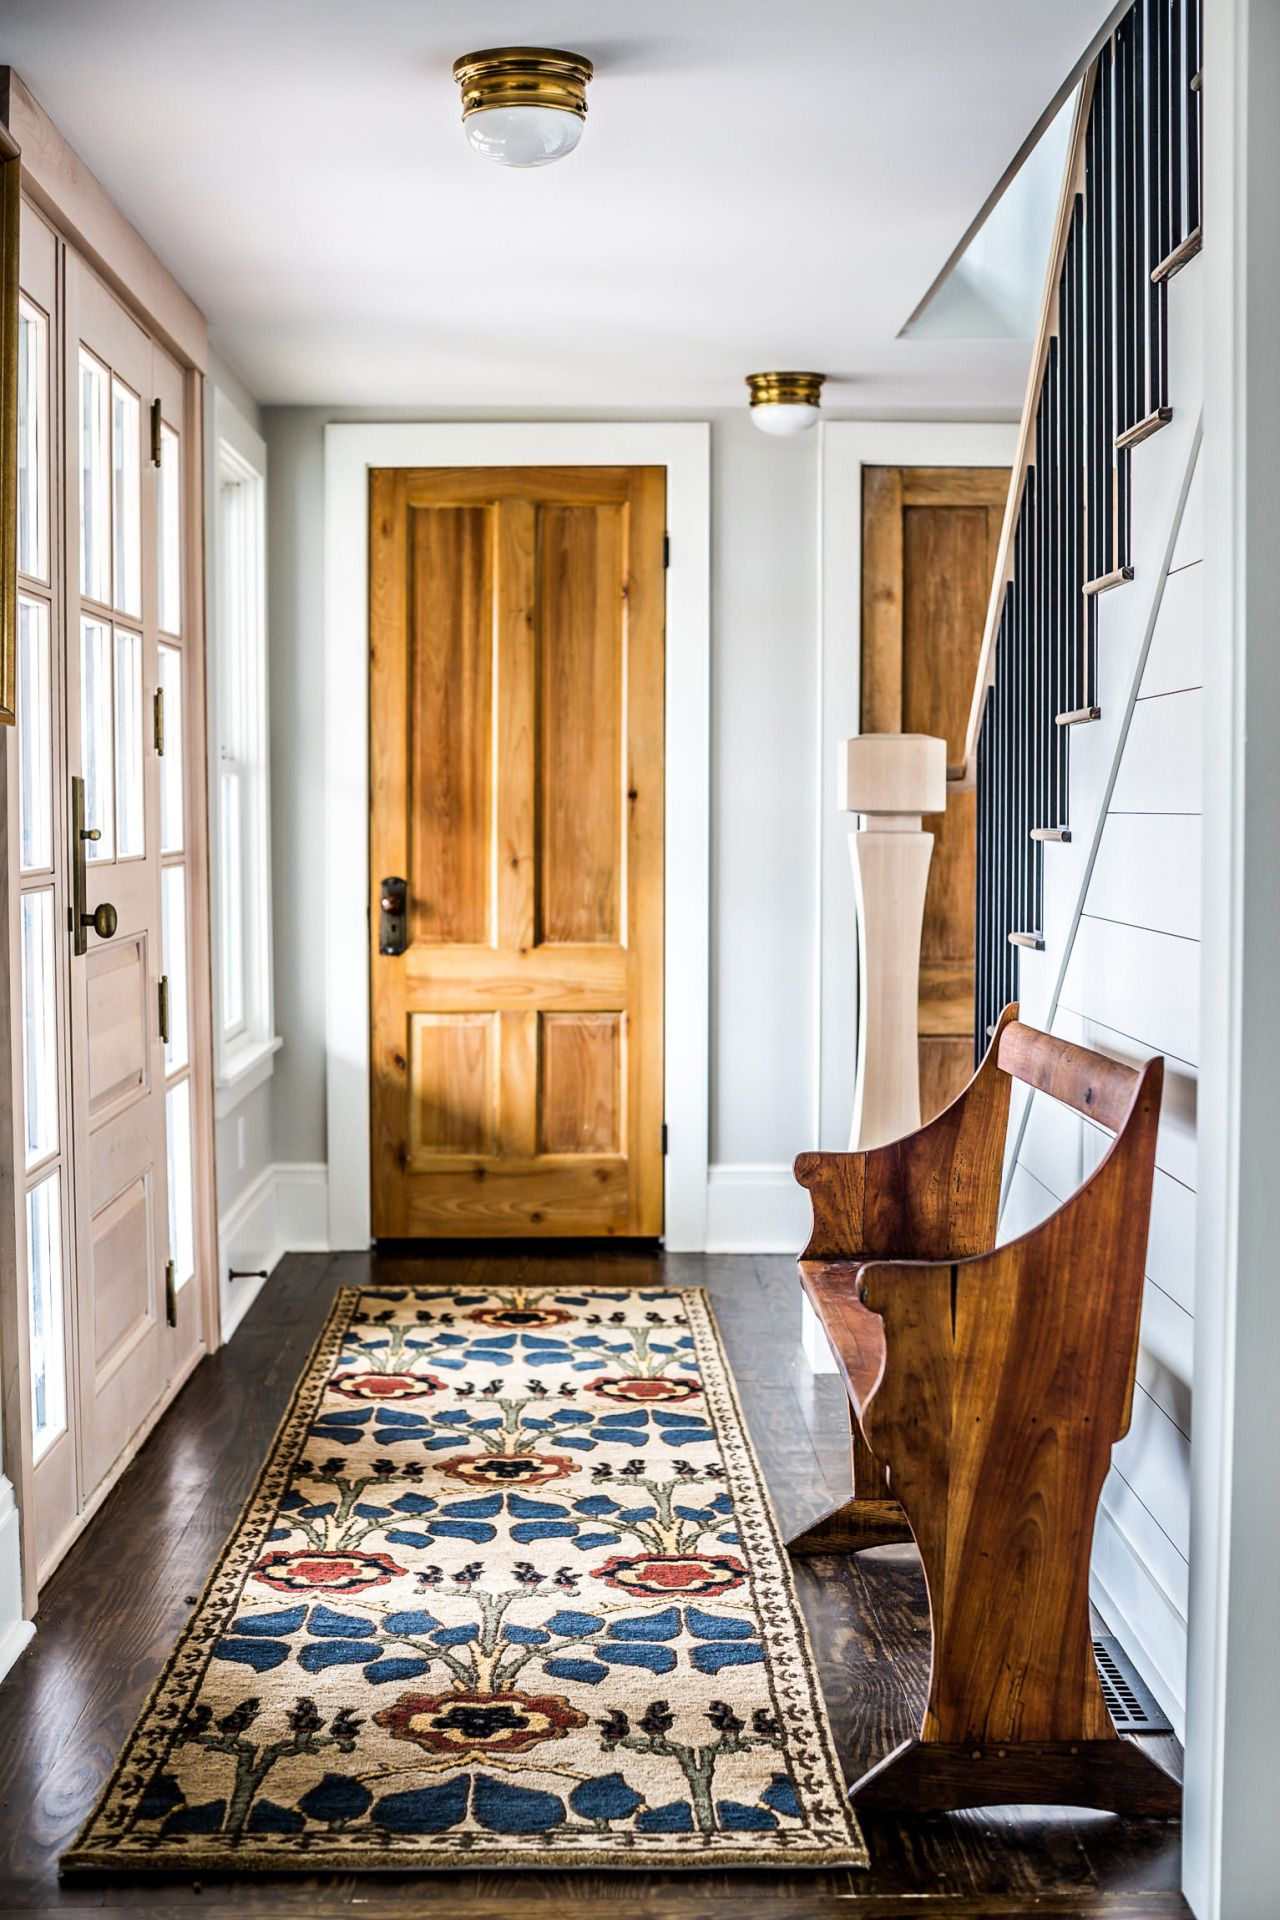 Beautiful Entry Way. Pop Of Color With Rug, Small Accents